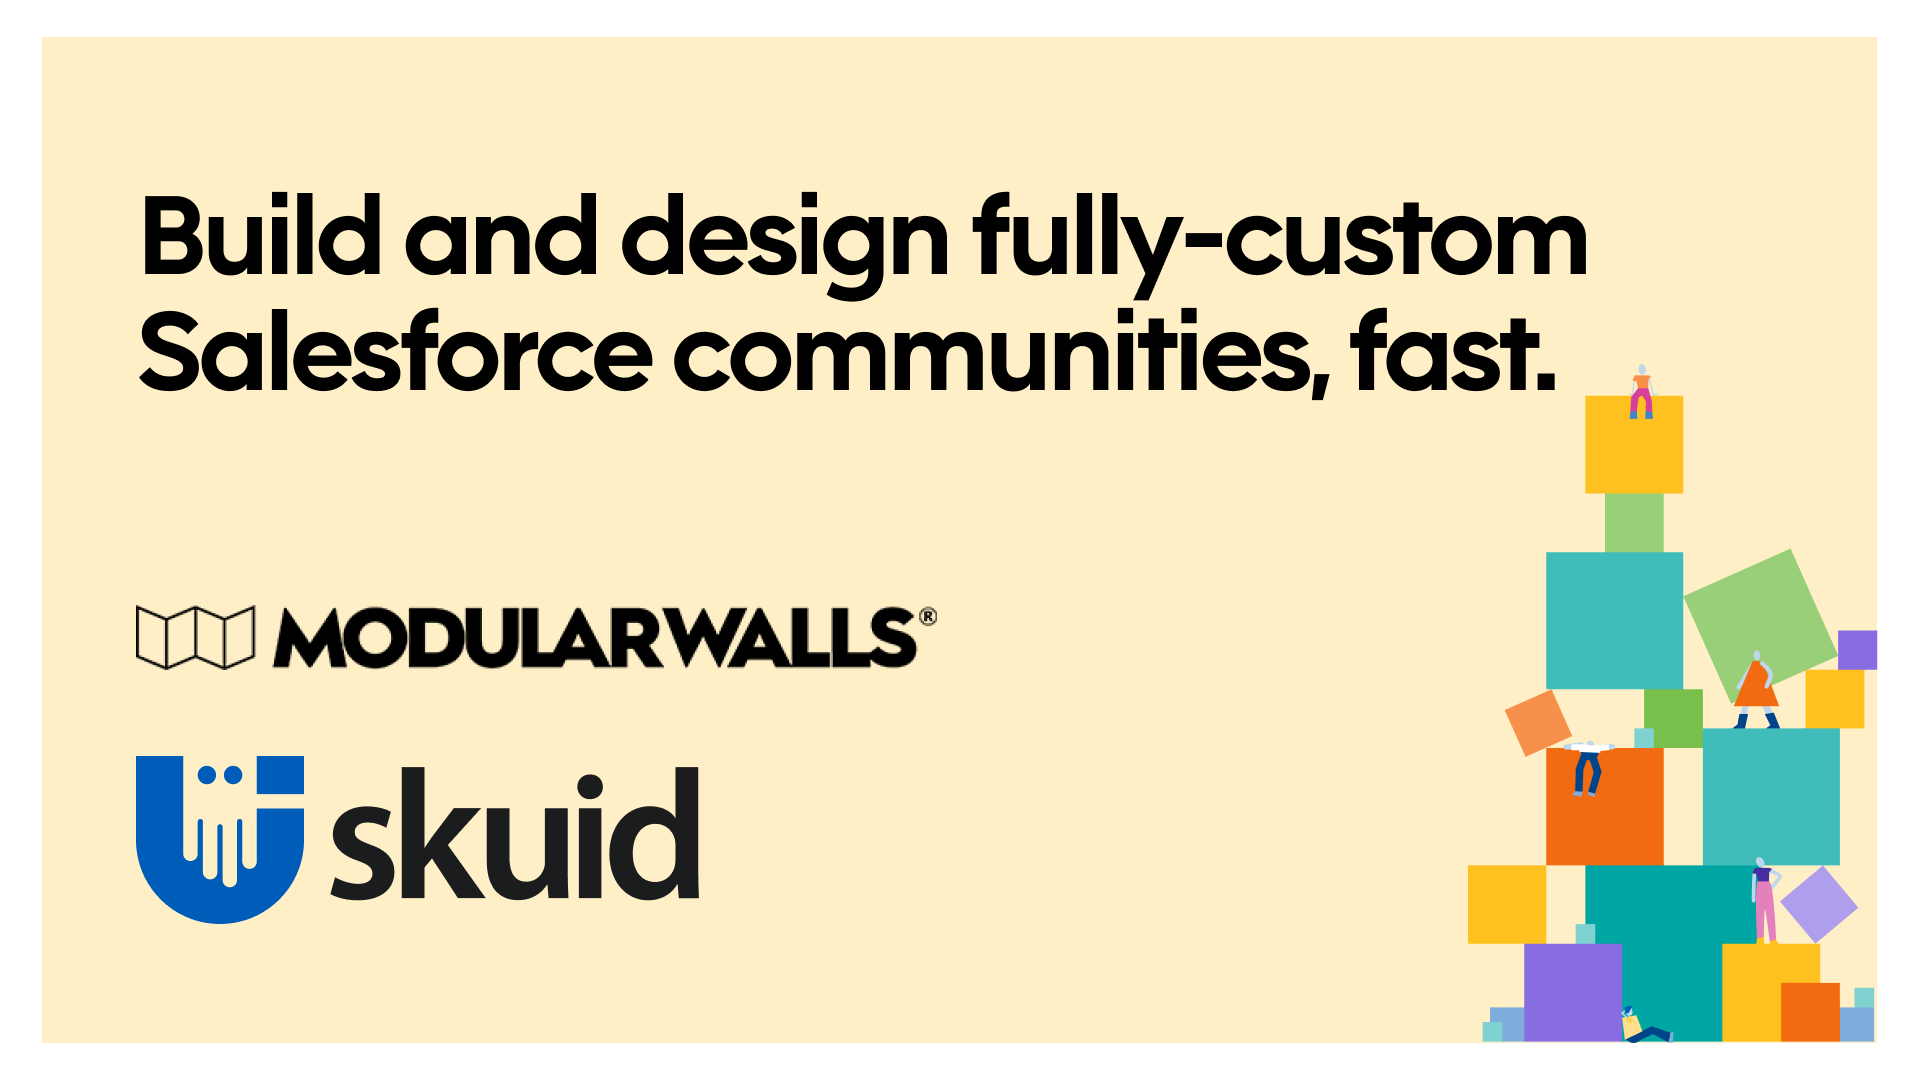 Build and design fully-custom Salesforce communities, fast.